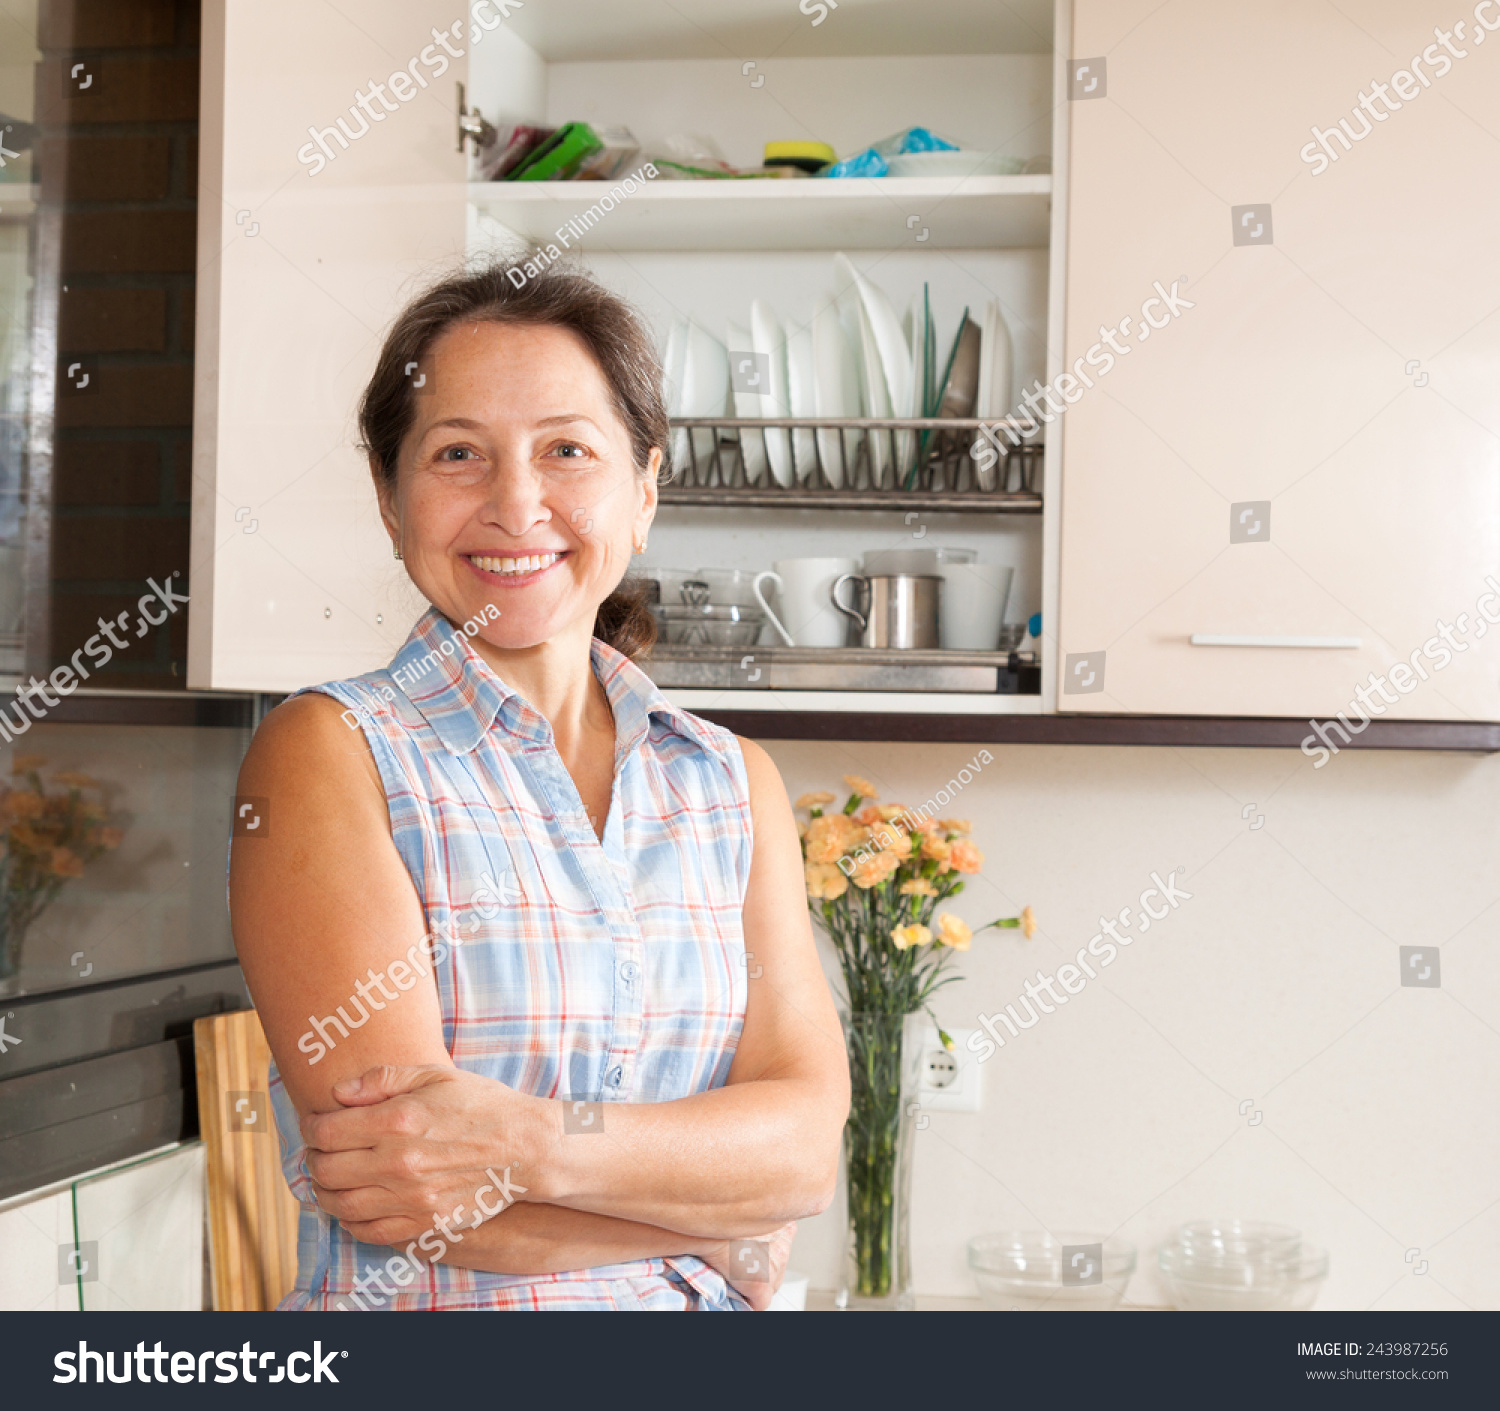 Housewife mature picture